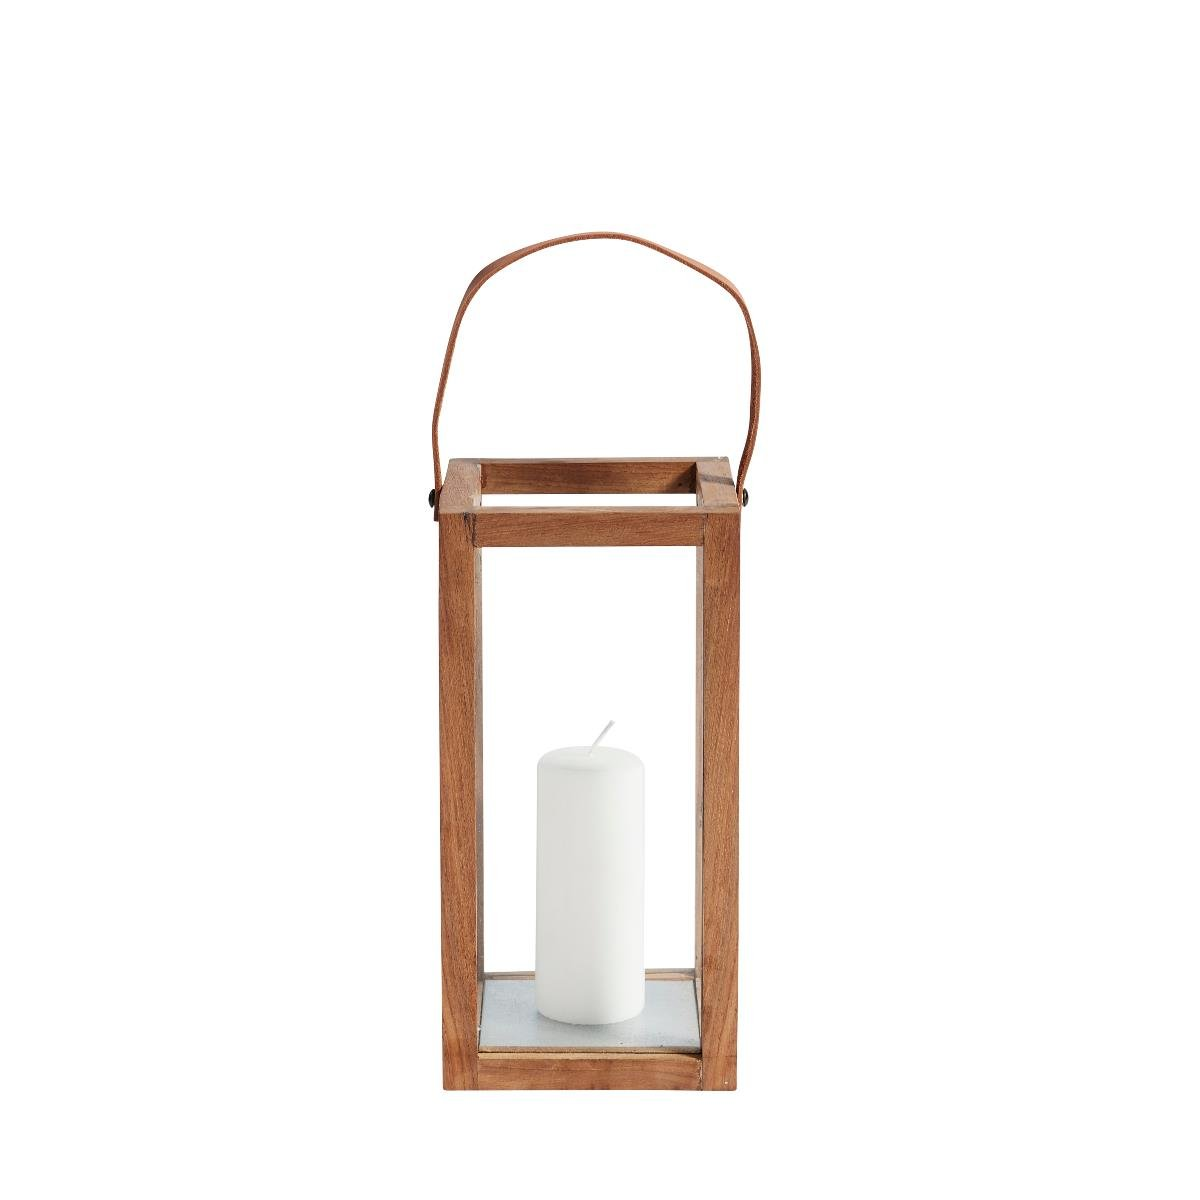 Muubs - Lantern Small - Recycled Teak (1121527501)